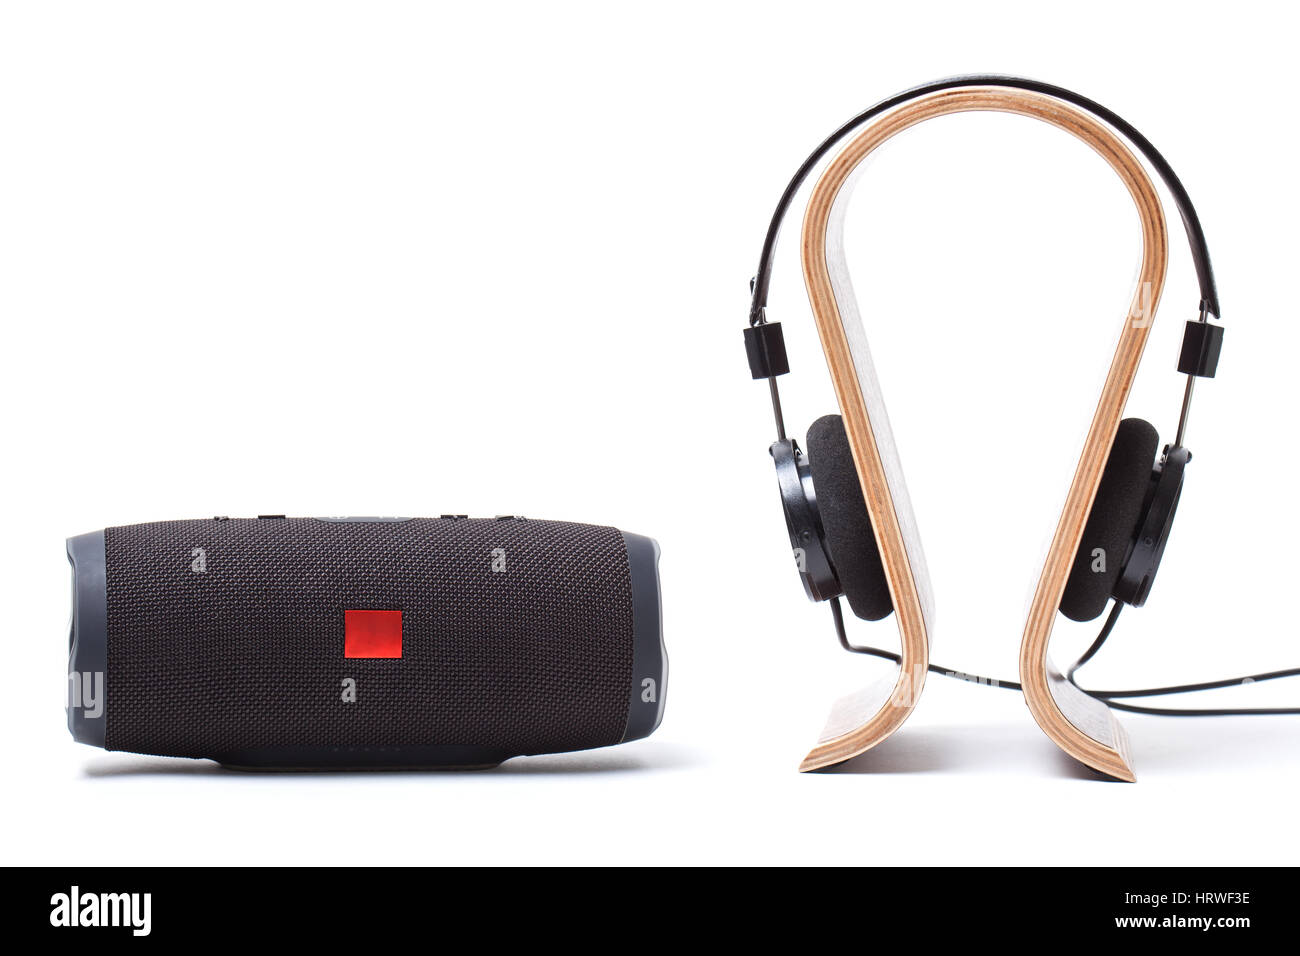 headphones in black and wireless portable speaker system on a white background. isolated Stock Photo